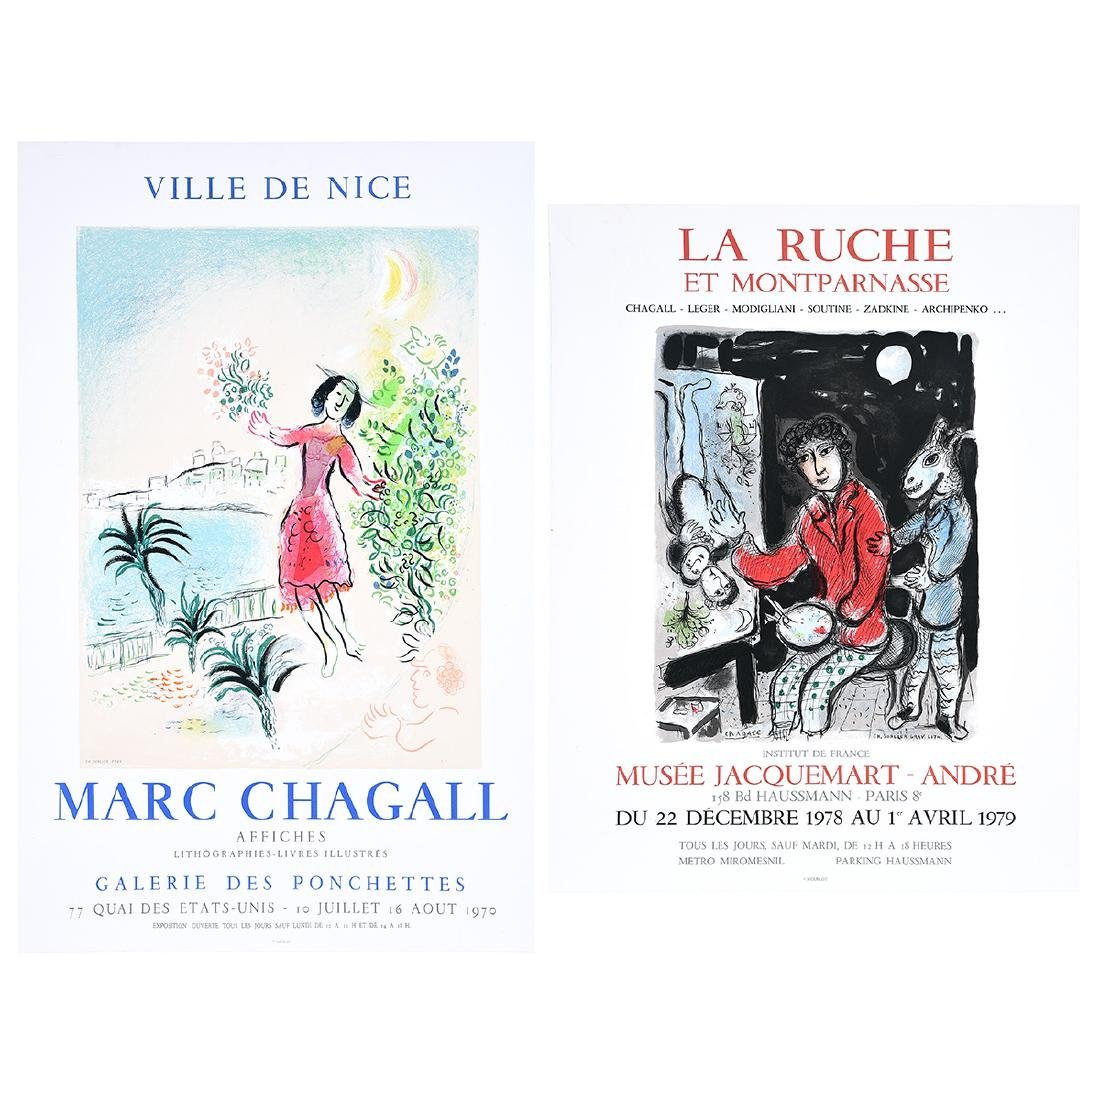 After Marc Chagall 2 lithograph exhibition posters